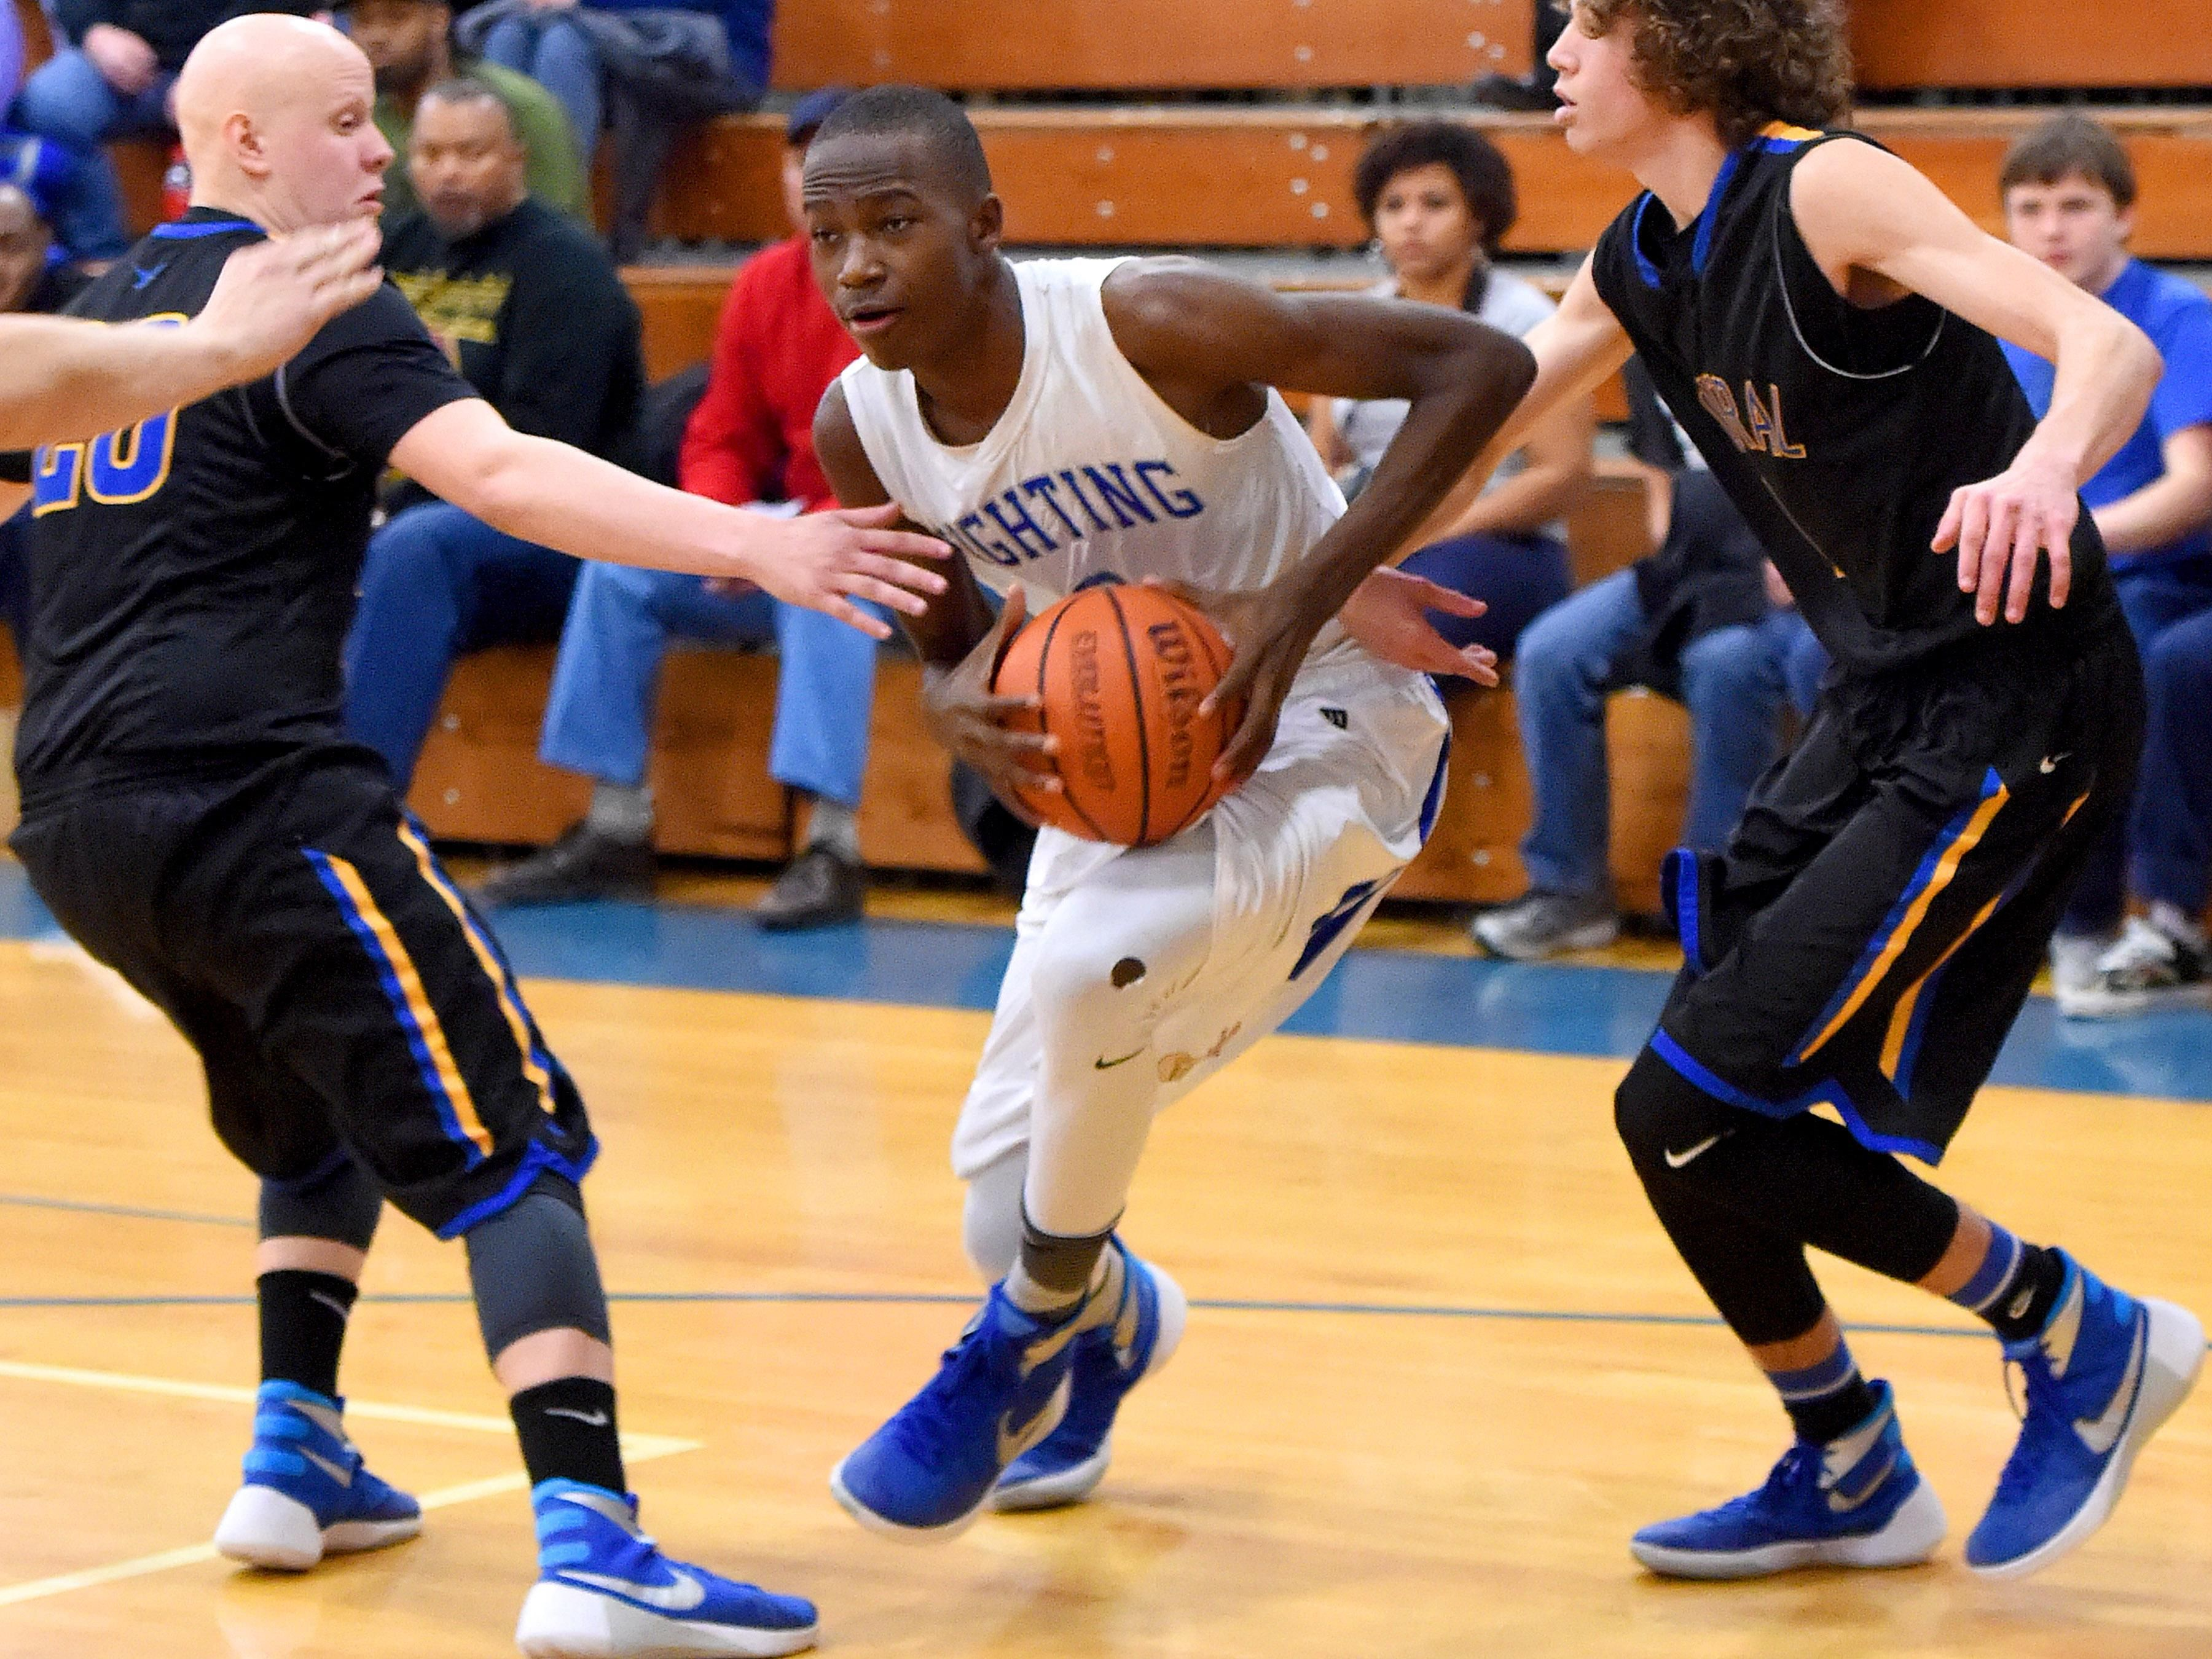 Robert E. Lee's Darius George committed to play basketball at Marshall University next season. Marshall offered him a scholarship Thursday afternoon, Sept. 15.